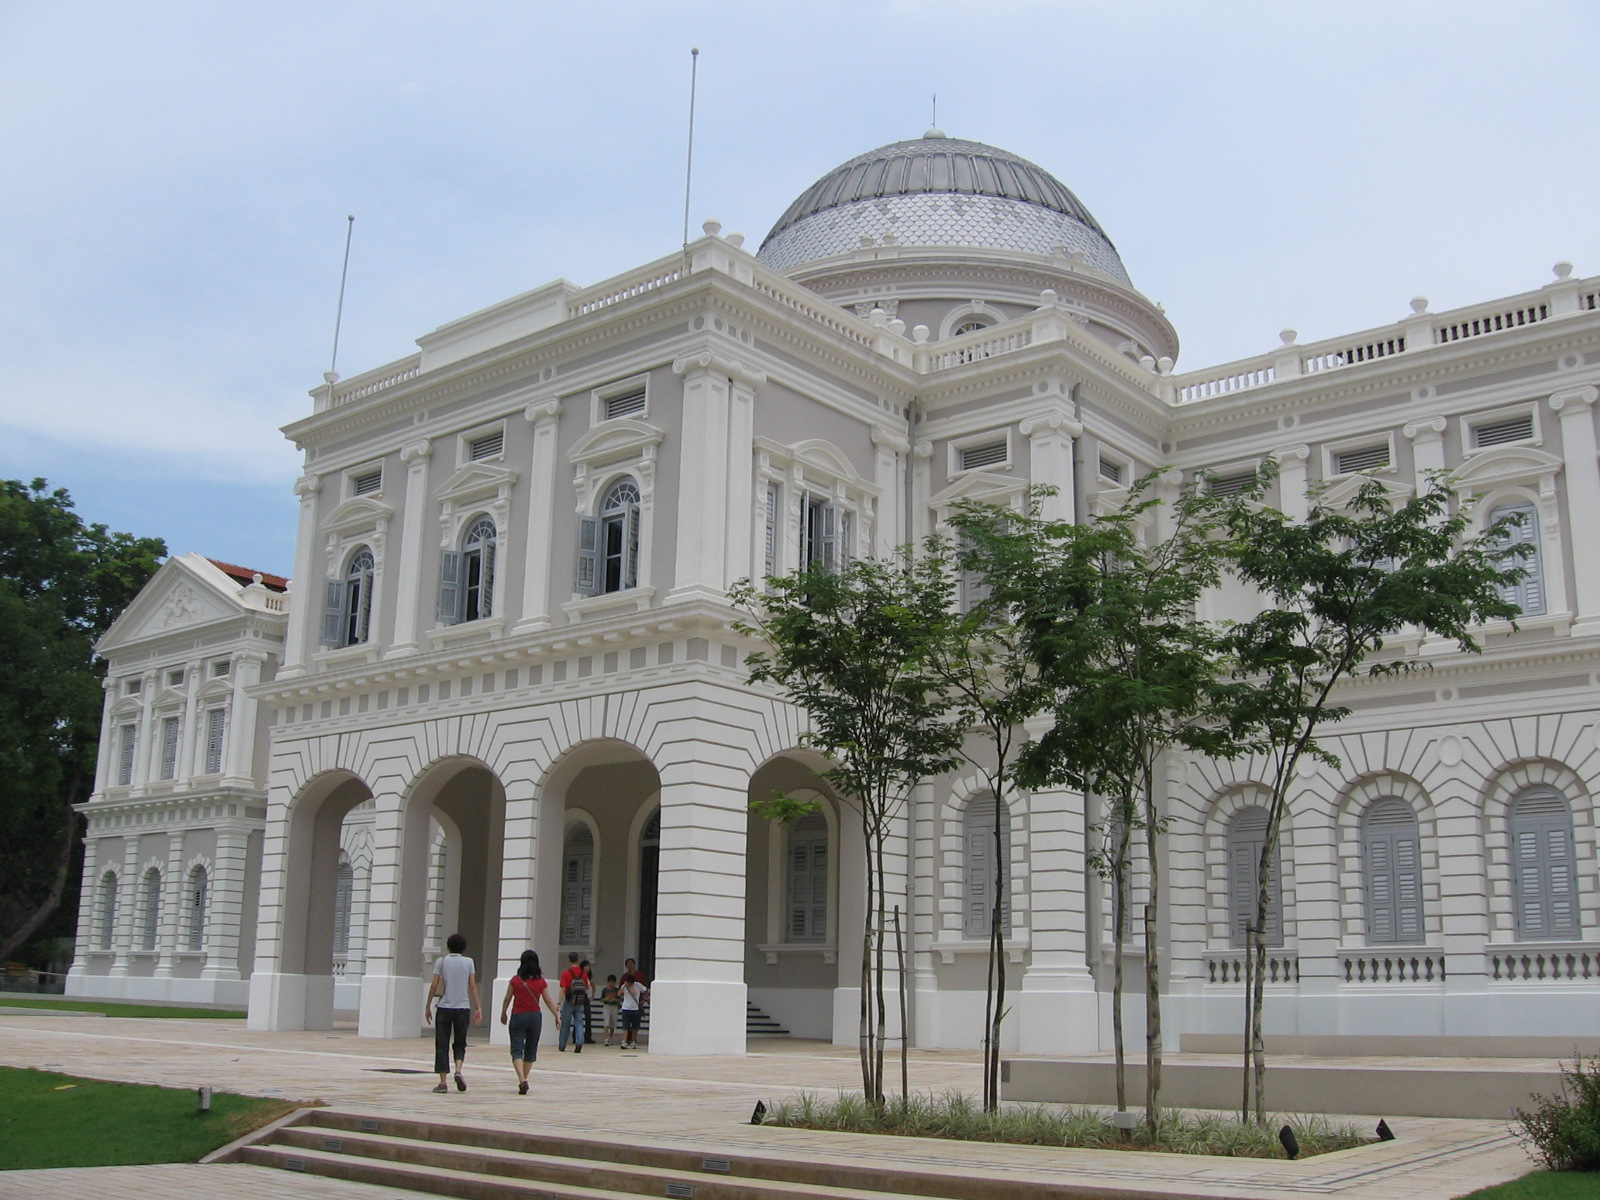 File:National Museum of Singapore 3, Aug 06.JPG - Wikipedia, the ...